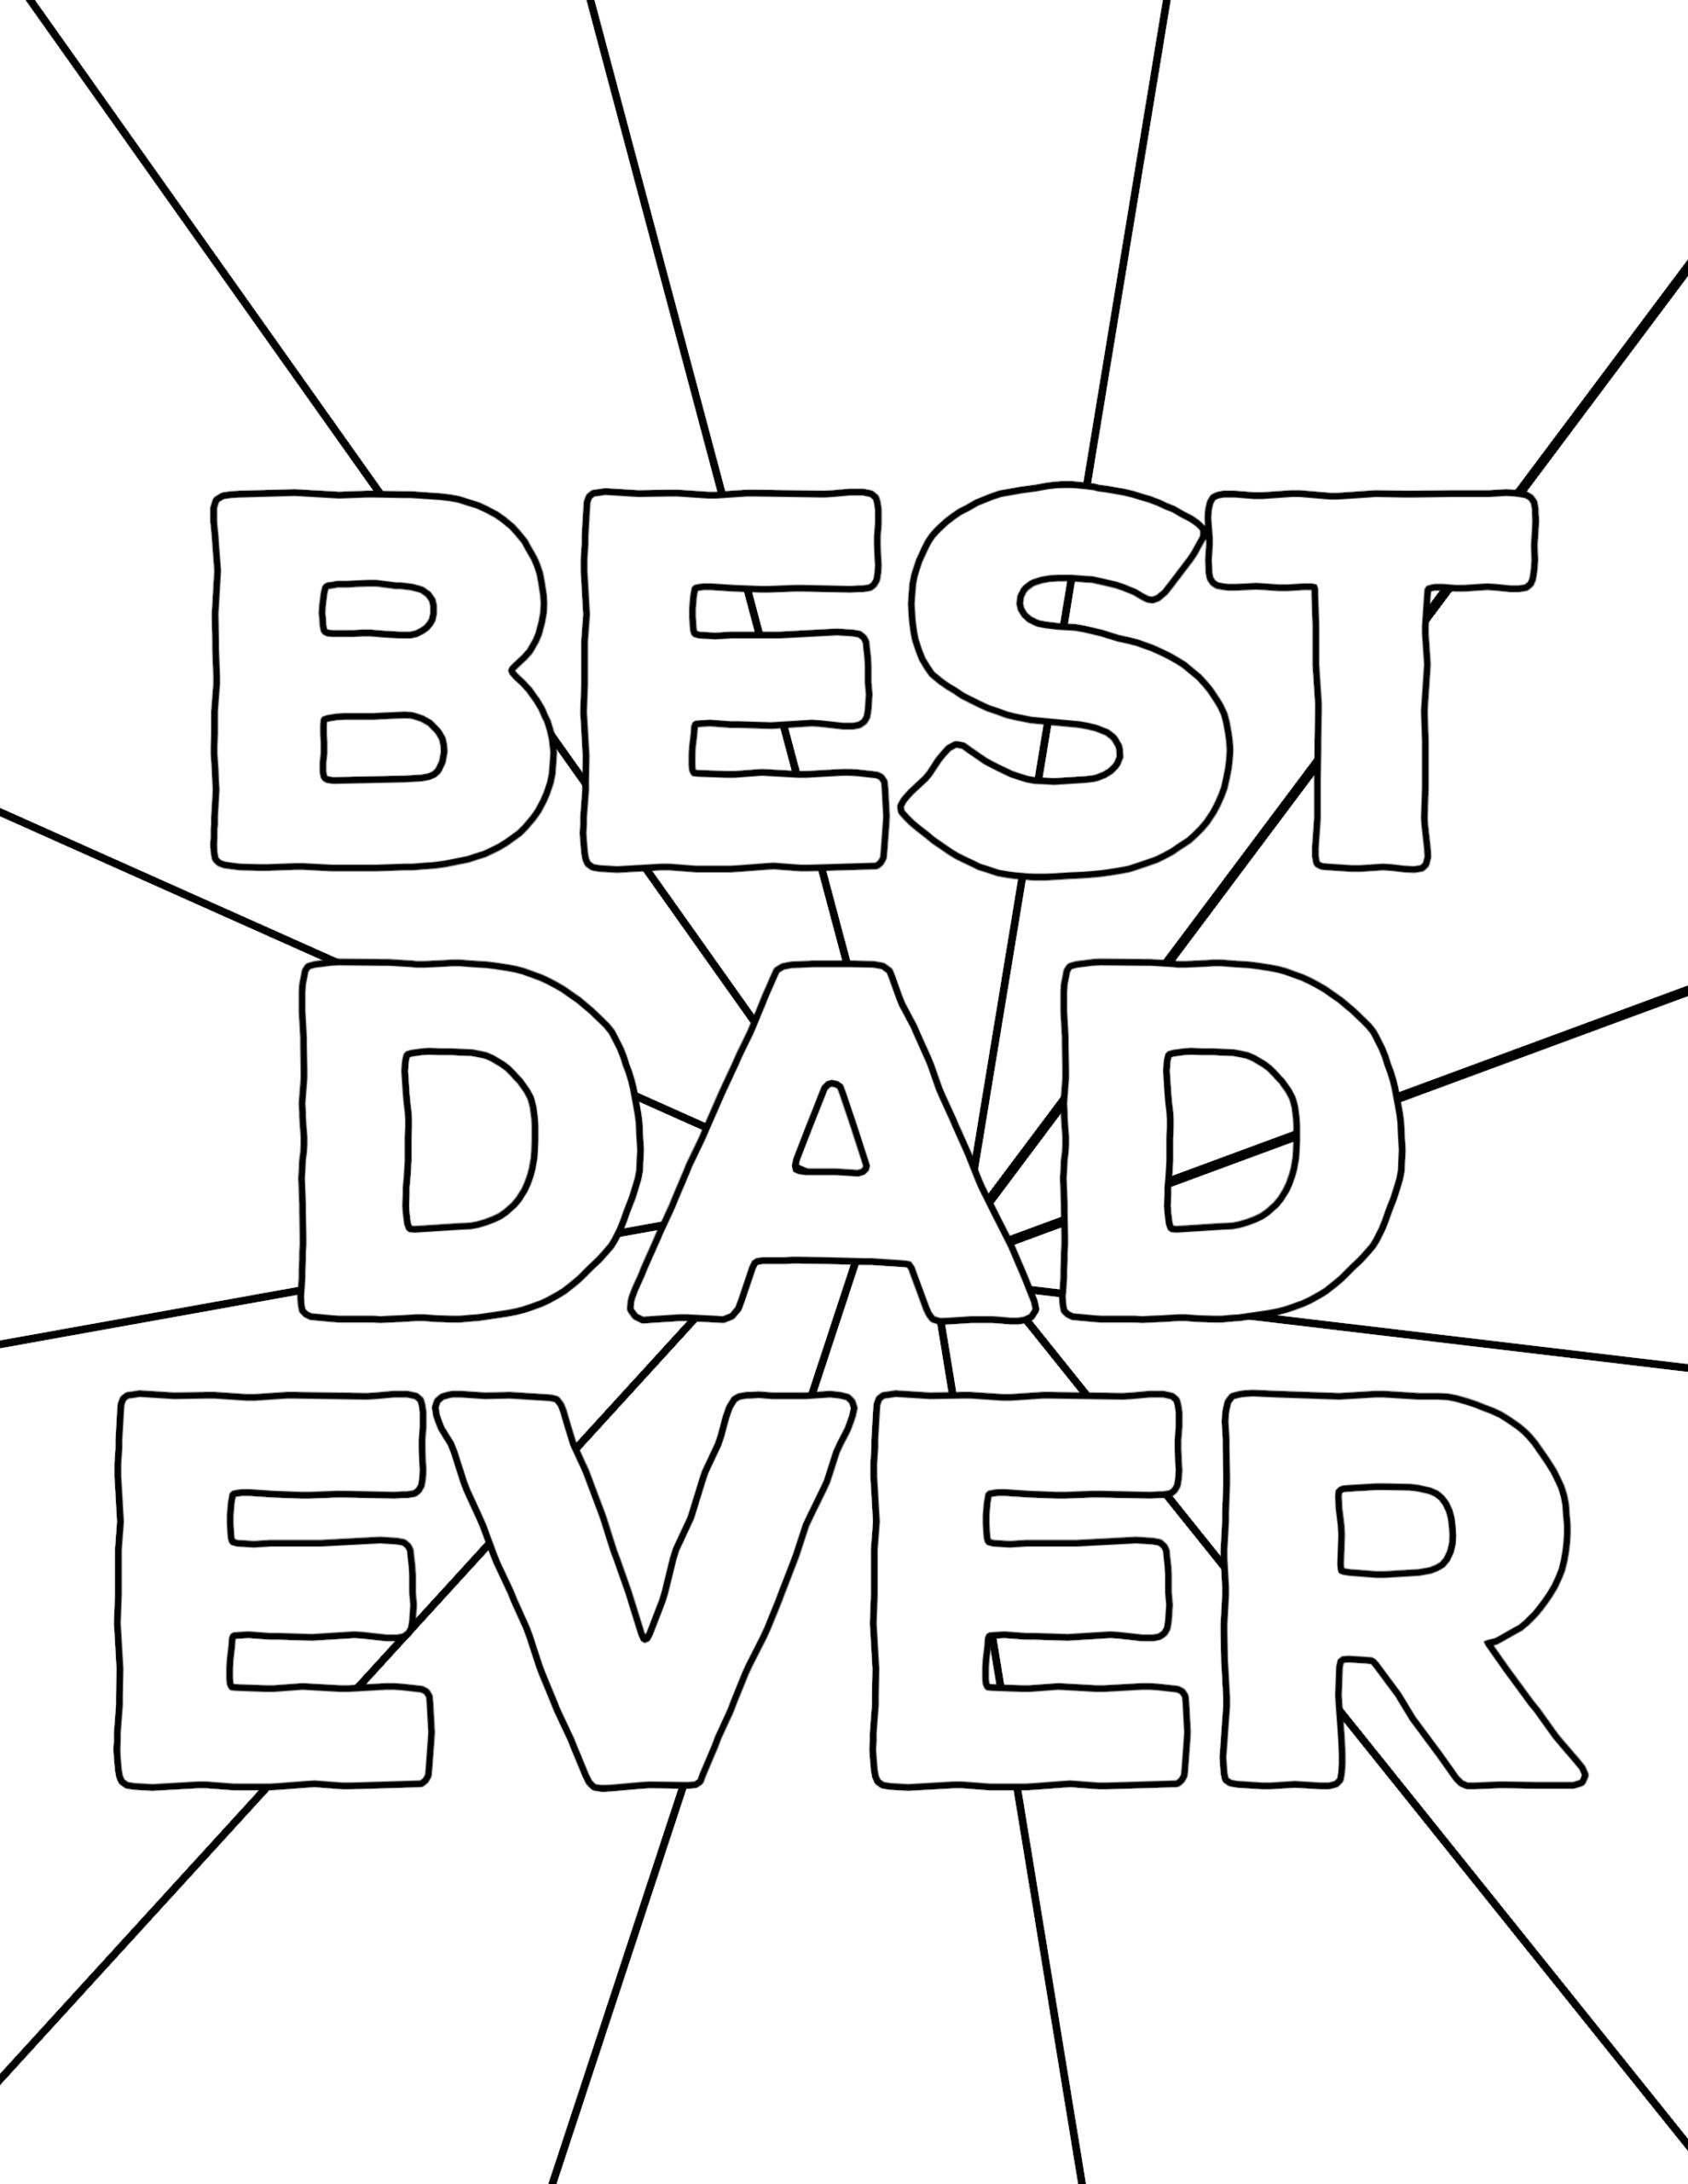 Happy Father's Day Coloring Pages Free Printables - Paper Trail Design - Free Printable Fathers Day Coloring Pages For Grandpa